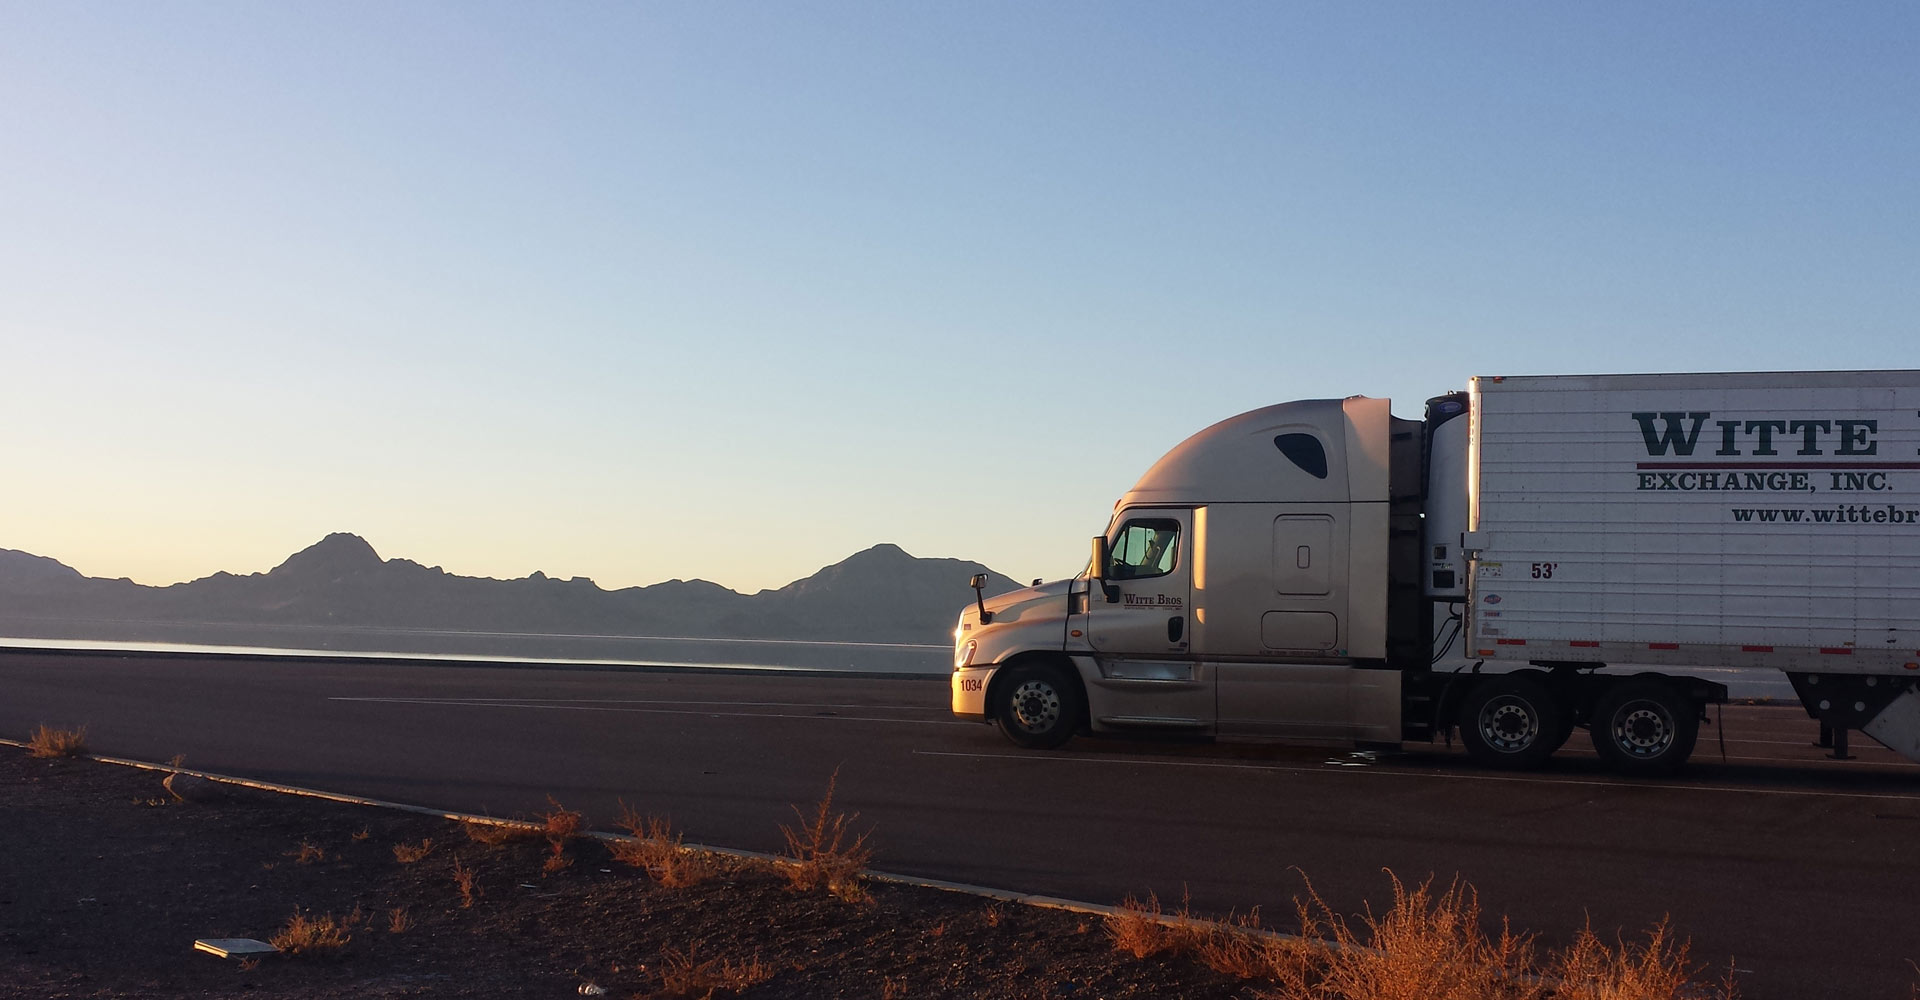 Exchange Inc. is your Transportation and Refrigerated Storage Service Solution & Witte Bros. Company | Truck Driving School Refrigerated Trucking ...